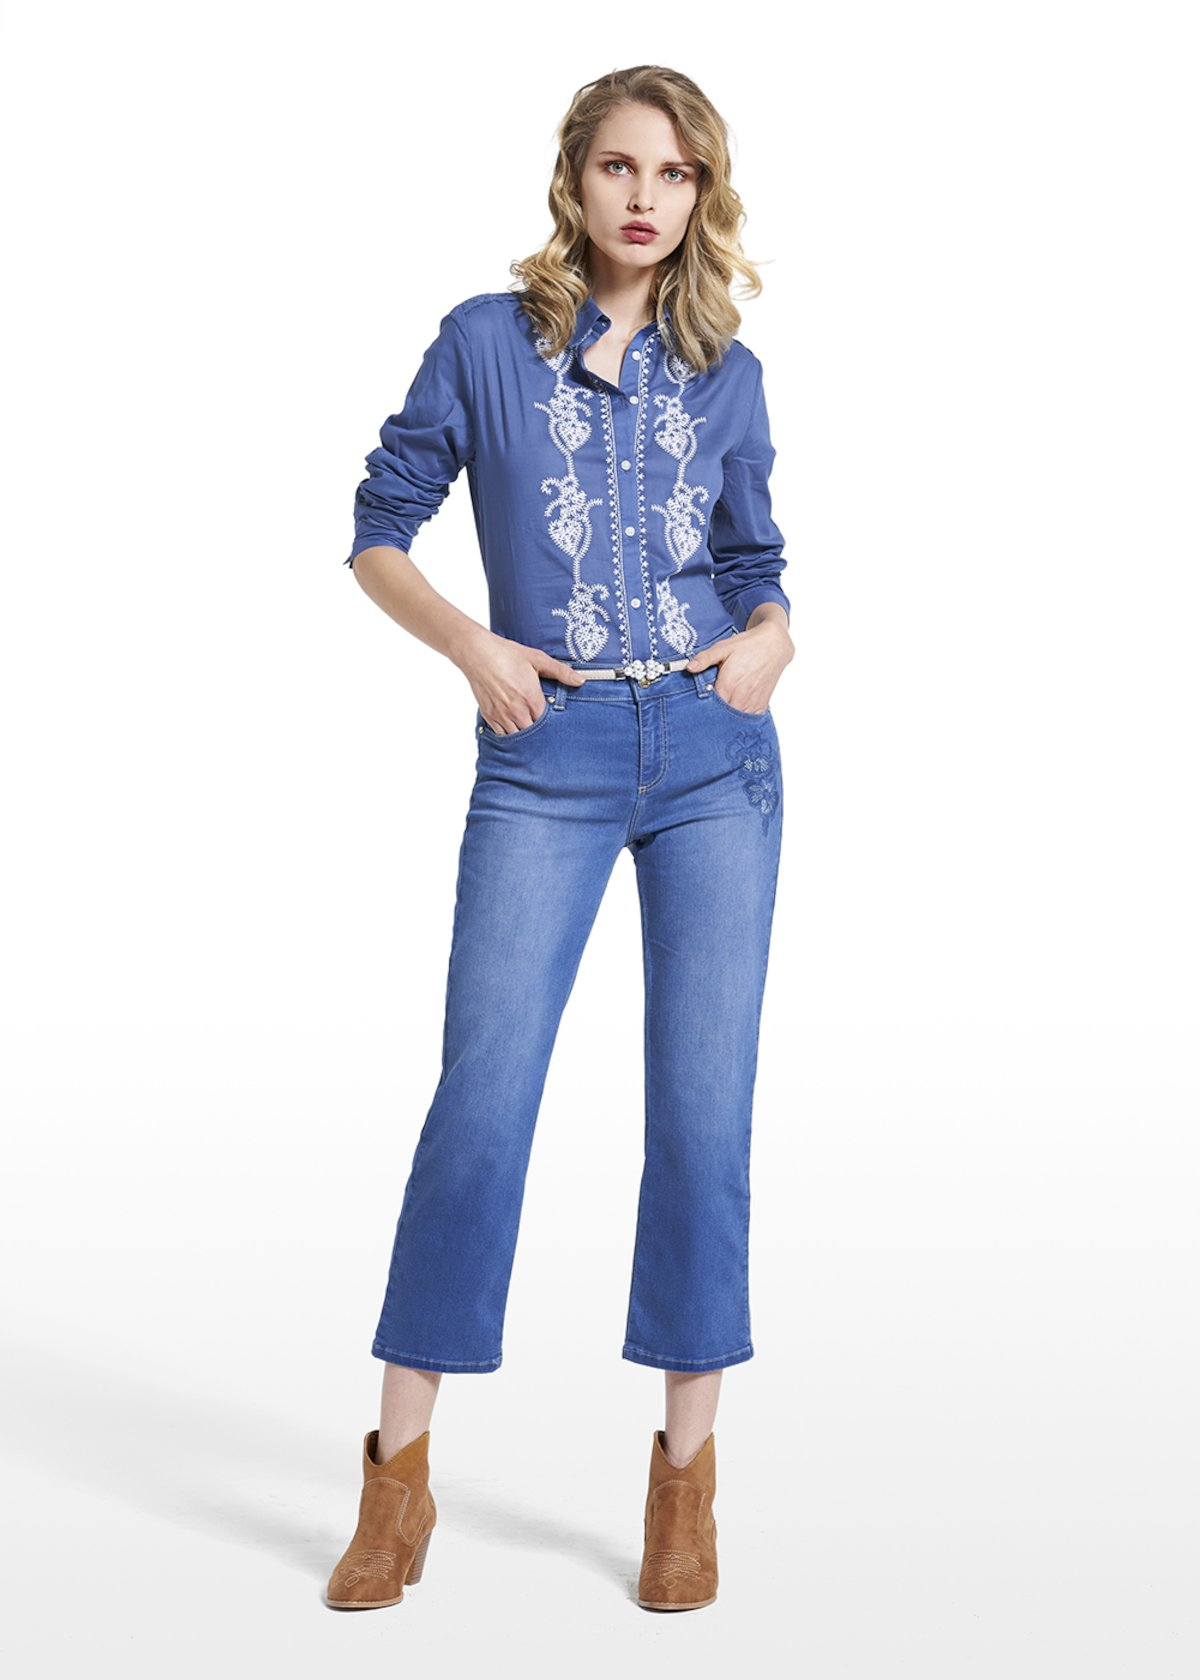 Blouse Crawler with contrasting floral embroidery - Blue - Woman